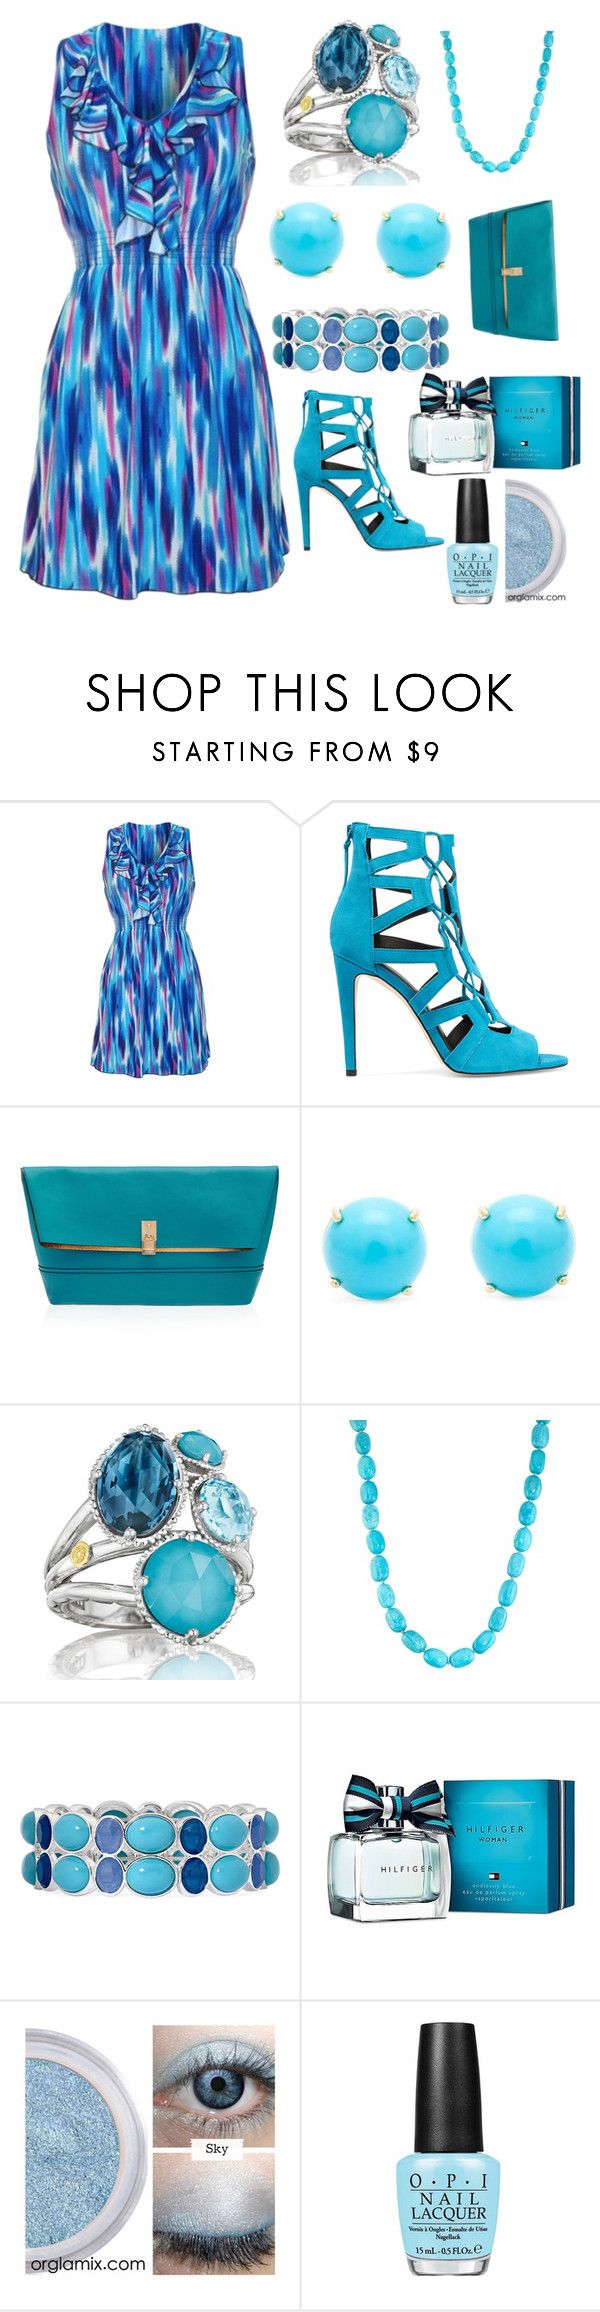 """""""Love Love this COLOR!!!!"""" by mdfletch ❤ liked on Polyvore featuring Rebecca Minkoff, Henri Bendel, Irene Neuwirth, Tacori, Liz Claiborne, Tommy Hilfiger and lovelovethiscolor"""